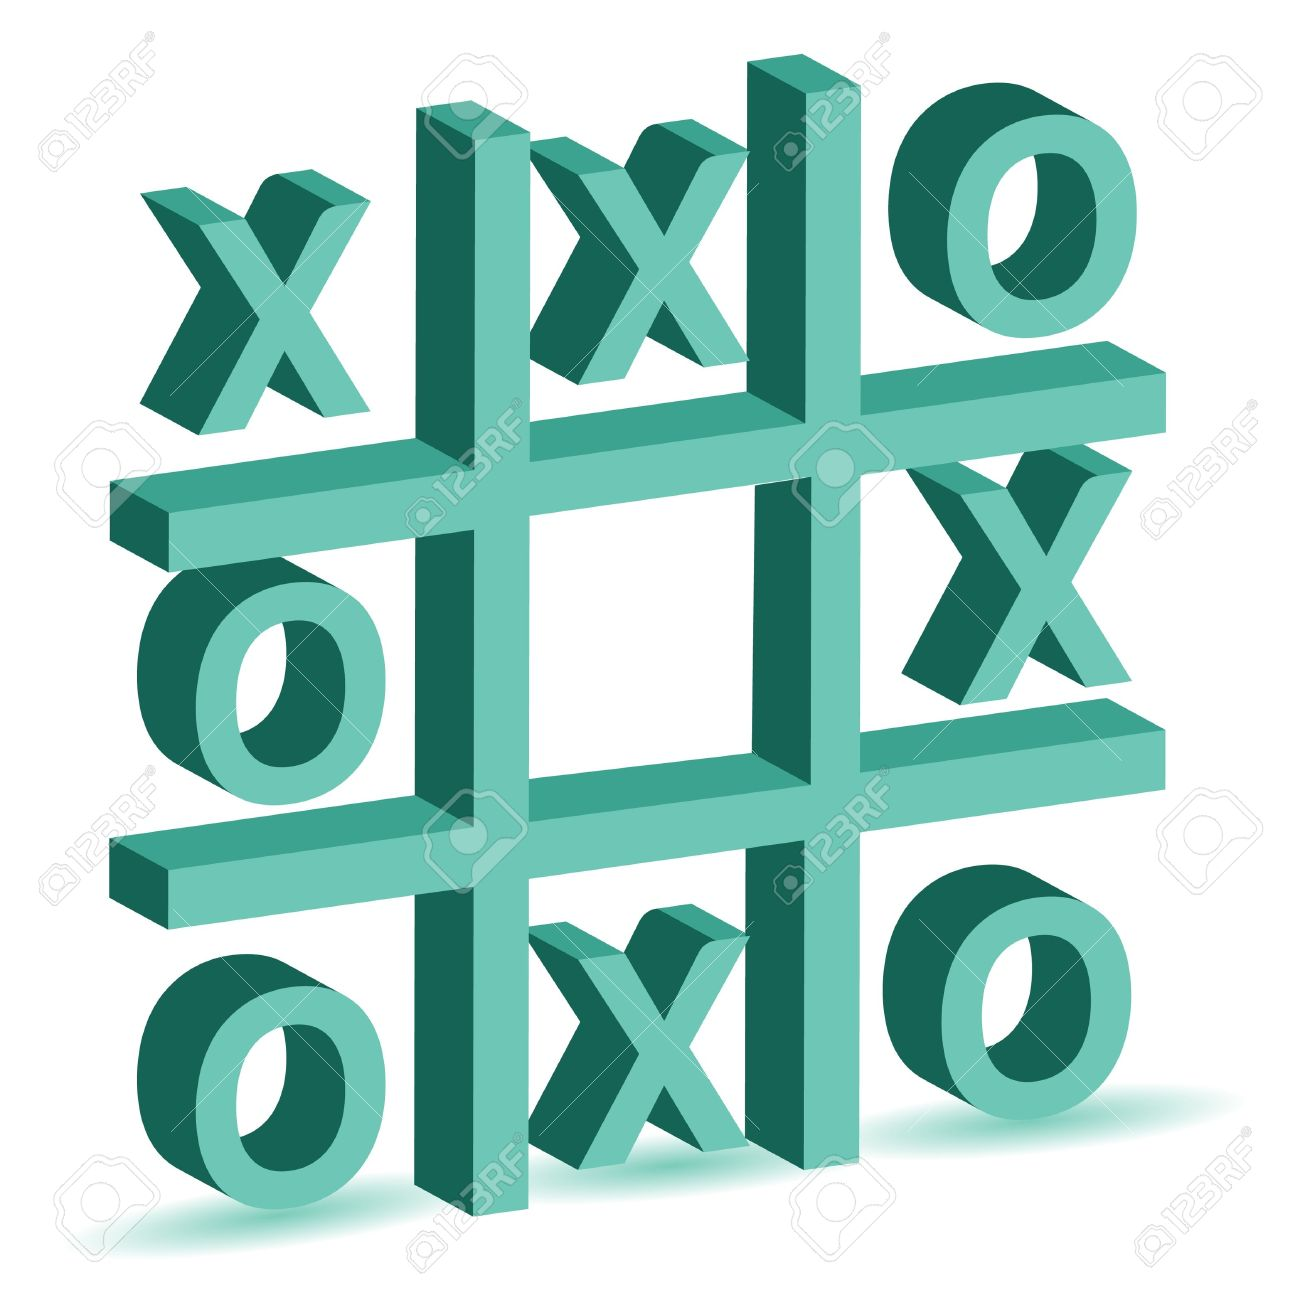 Noughts And Crosses Game Royalty Free Cliparts, Vectors, And Stock.